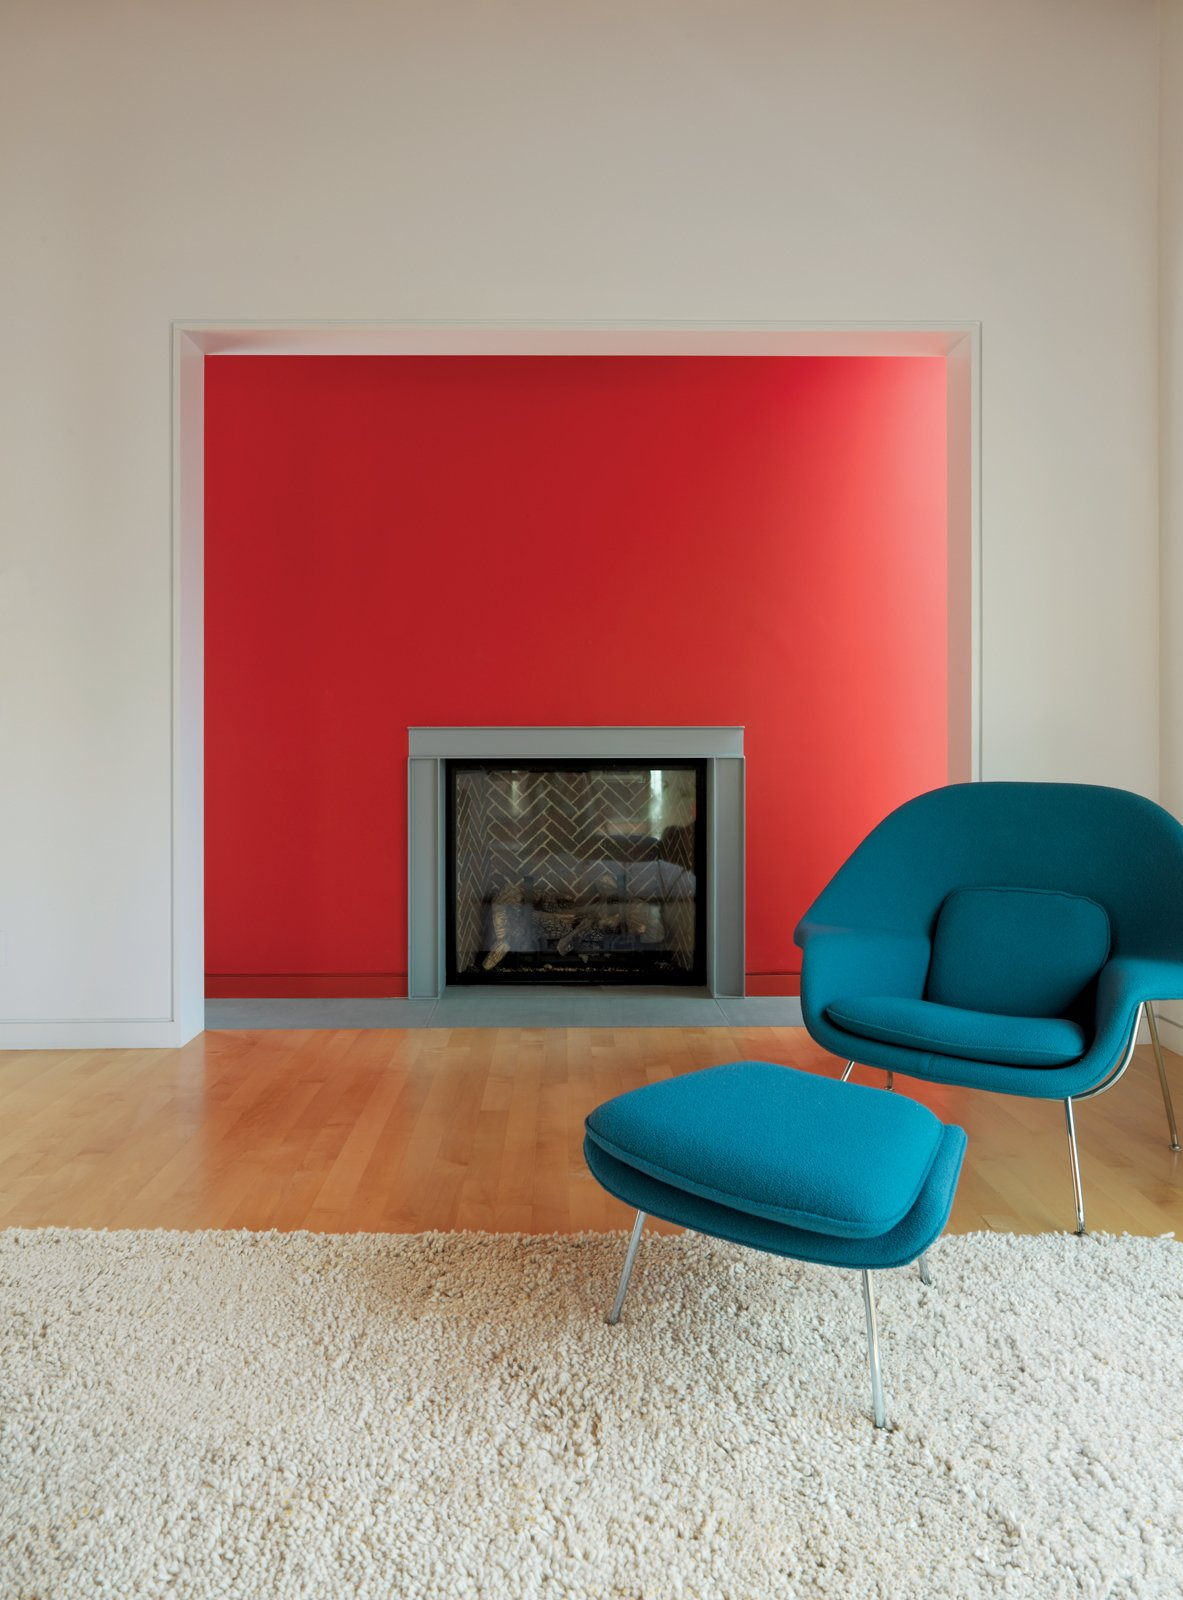 Womb chair living room - In The Living Room Fashandi Enjoys Lounging In The Saarinen Womb Chair By Knoll Near